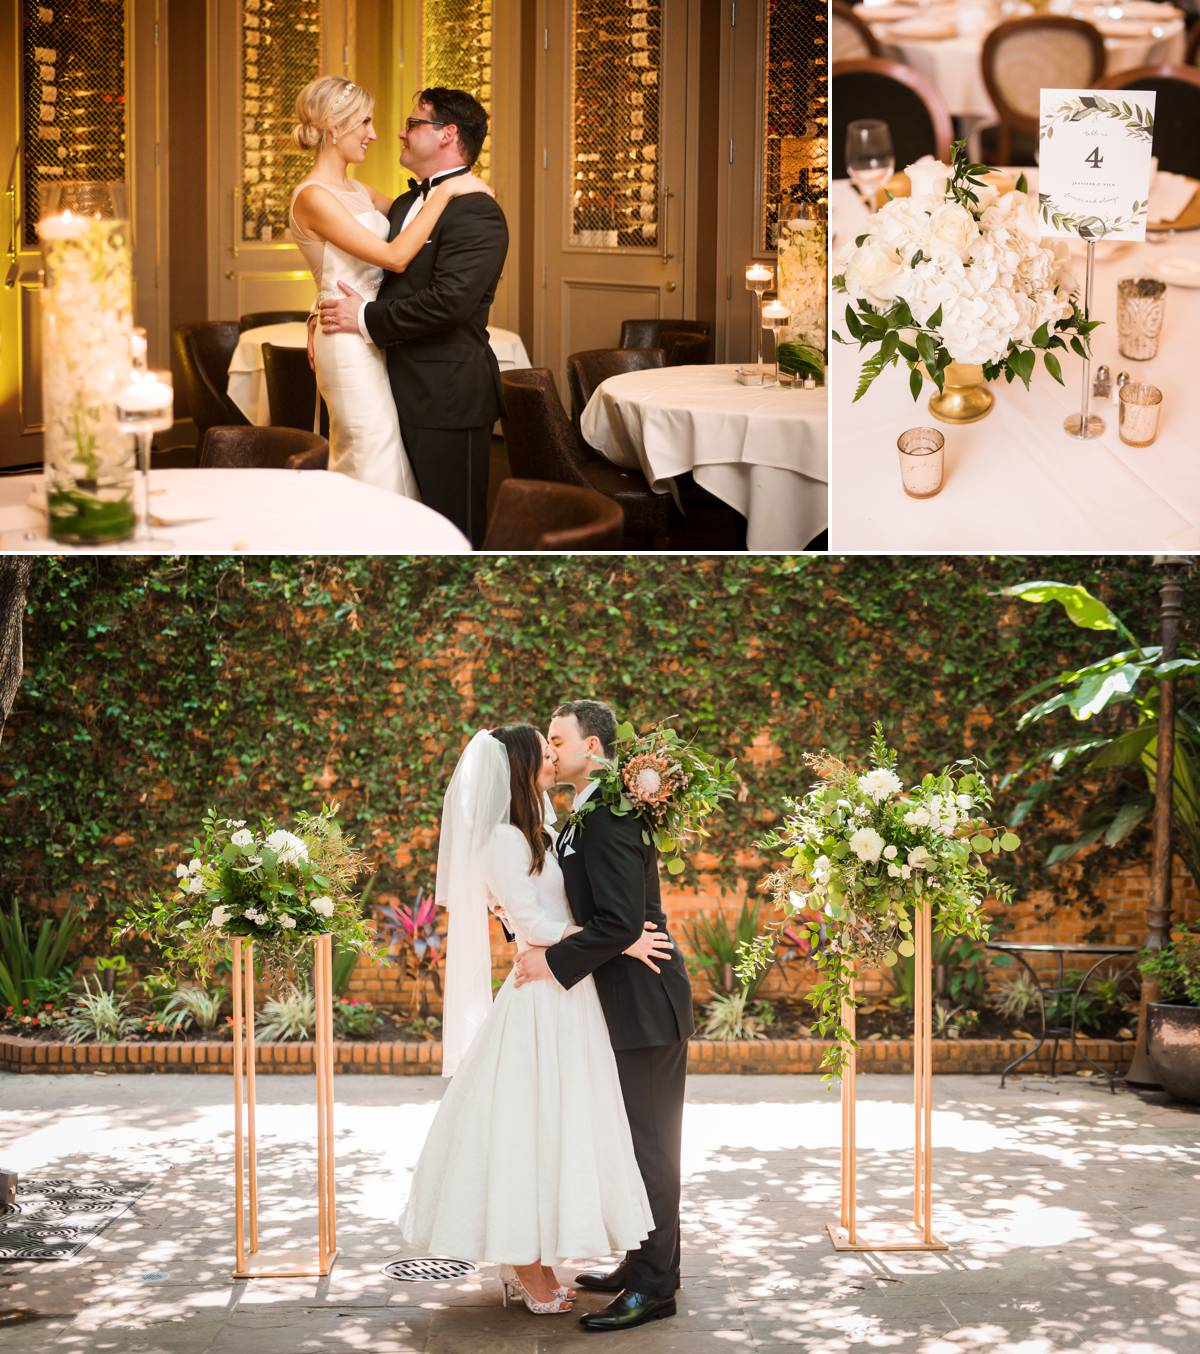 4 Advantages of Intimate Weddings - Brennan's of Houston Wedding